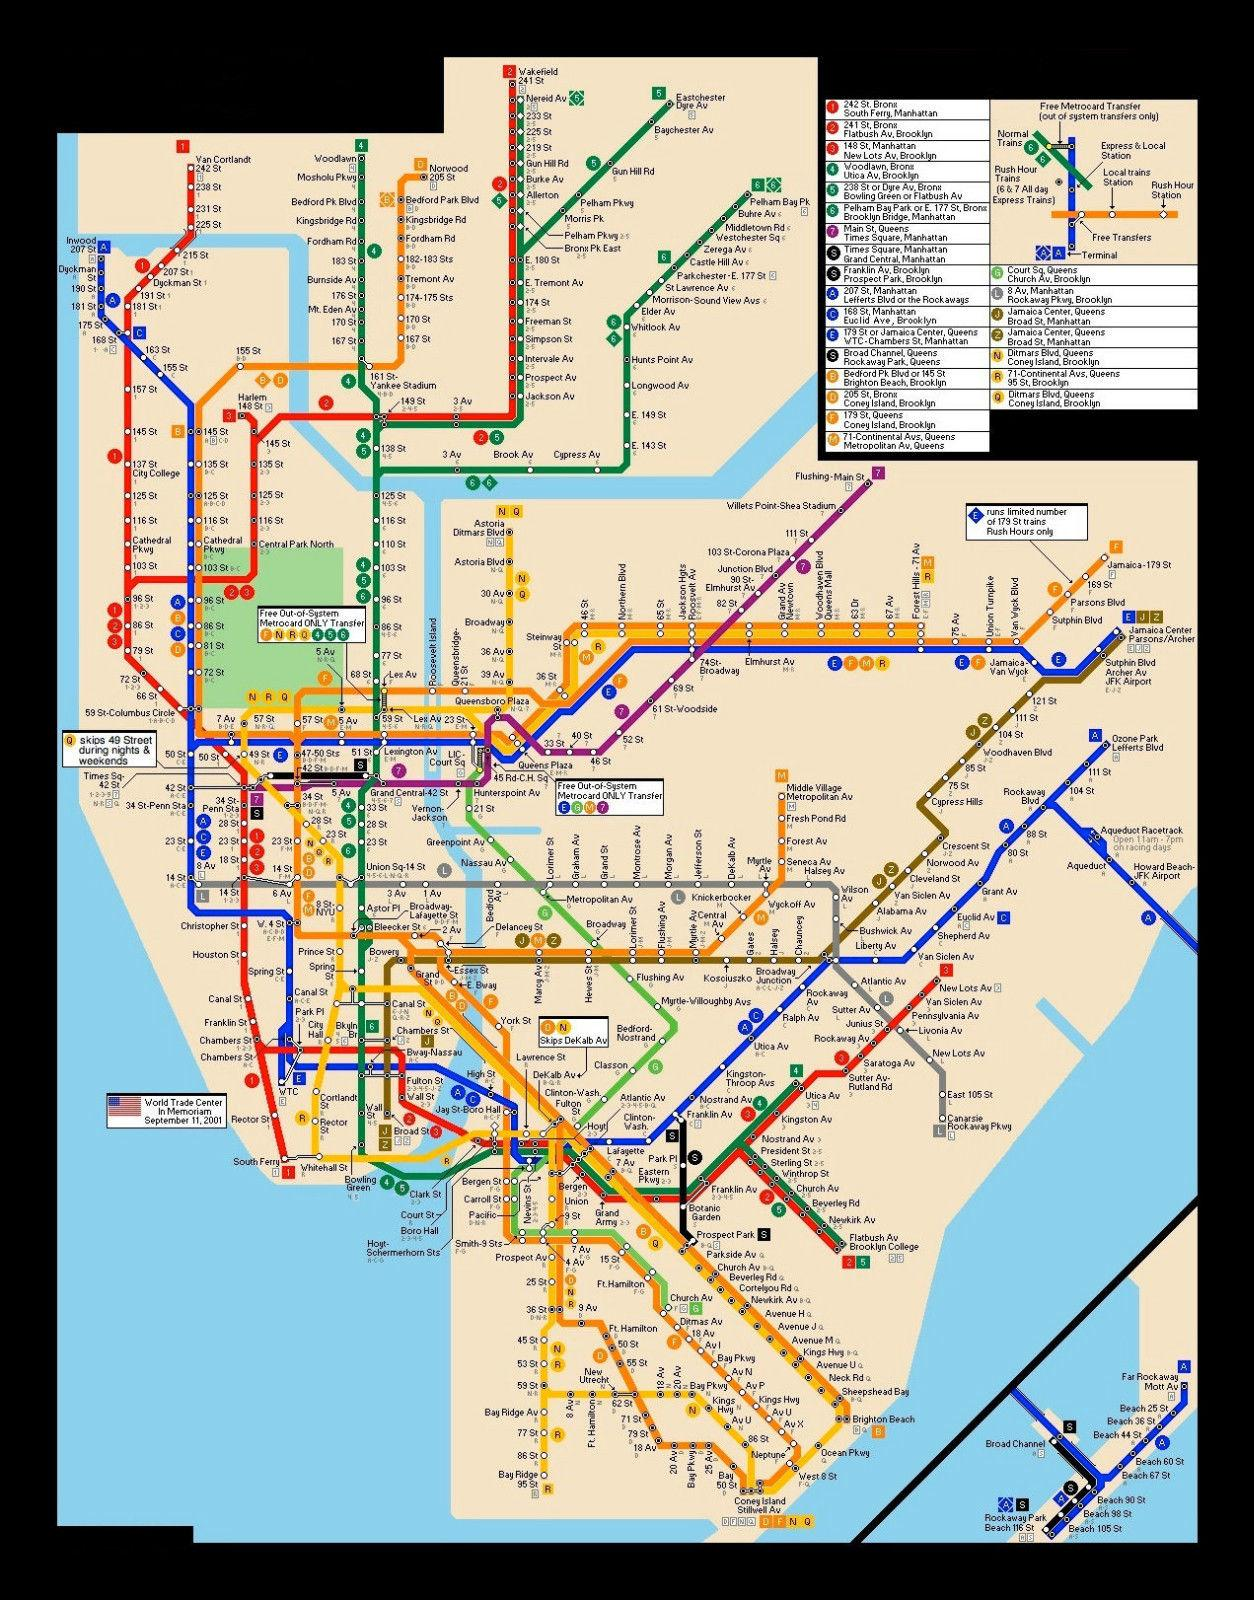 Subway Map For New York City.New York City Subway Map Art Silk Print Poster 24x36inch 60x90cm 089